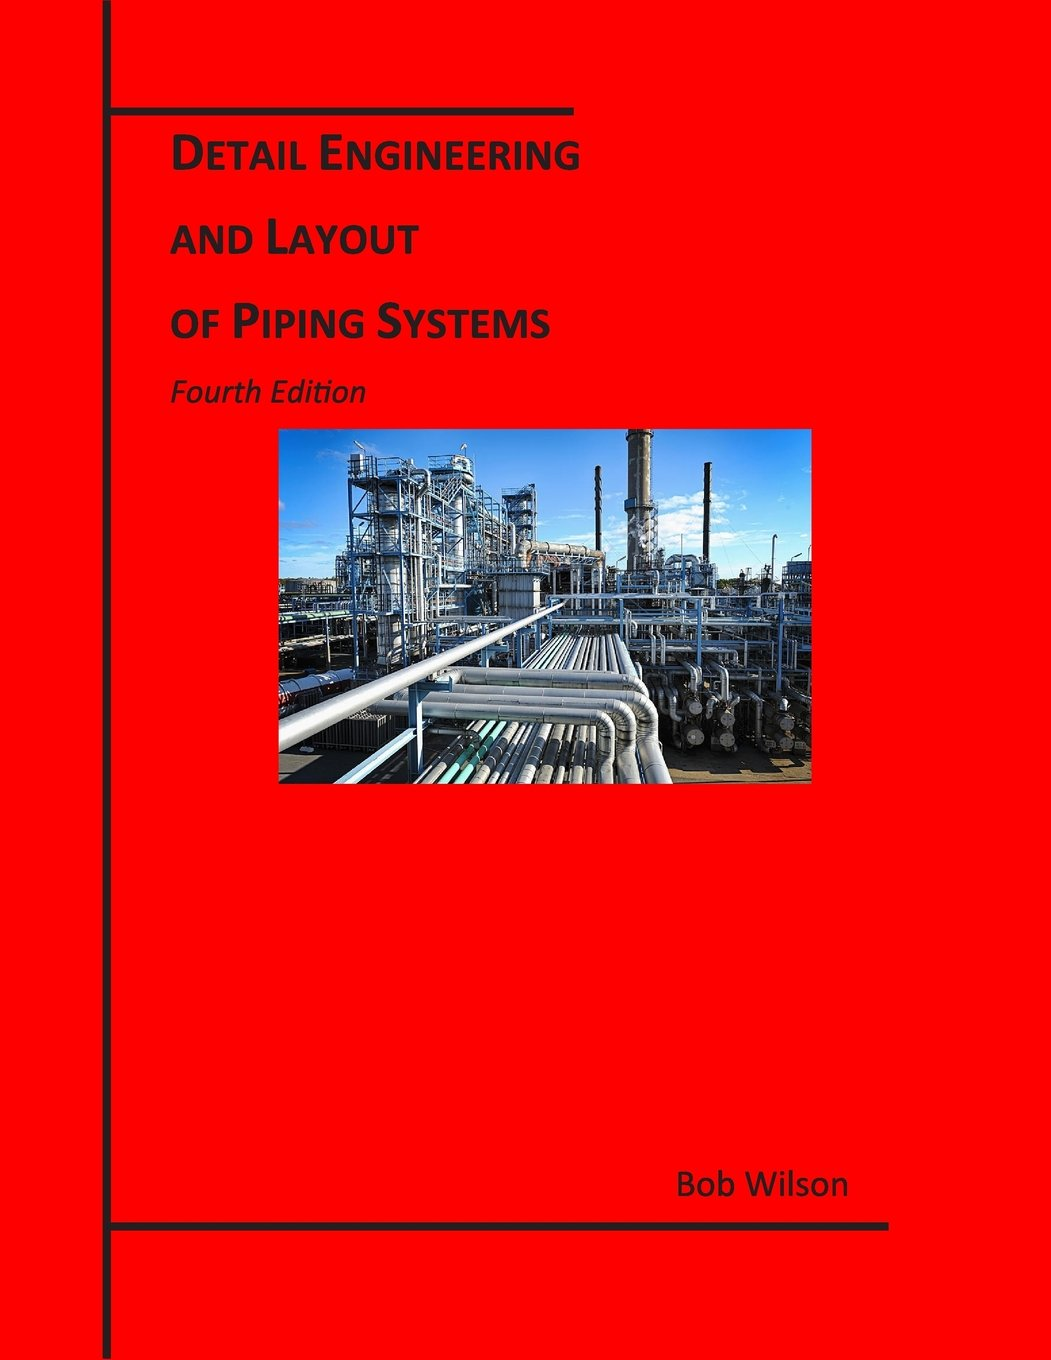 Detail Engineering And Layout Of Piping Systems 4th Edition Design Bob Wilson 9780666367594 Books